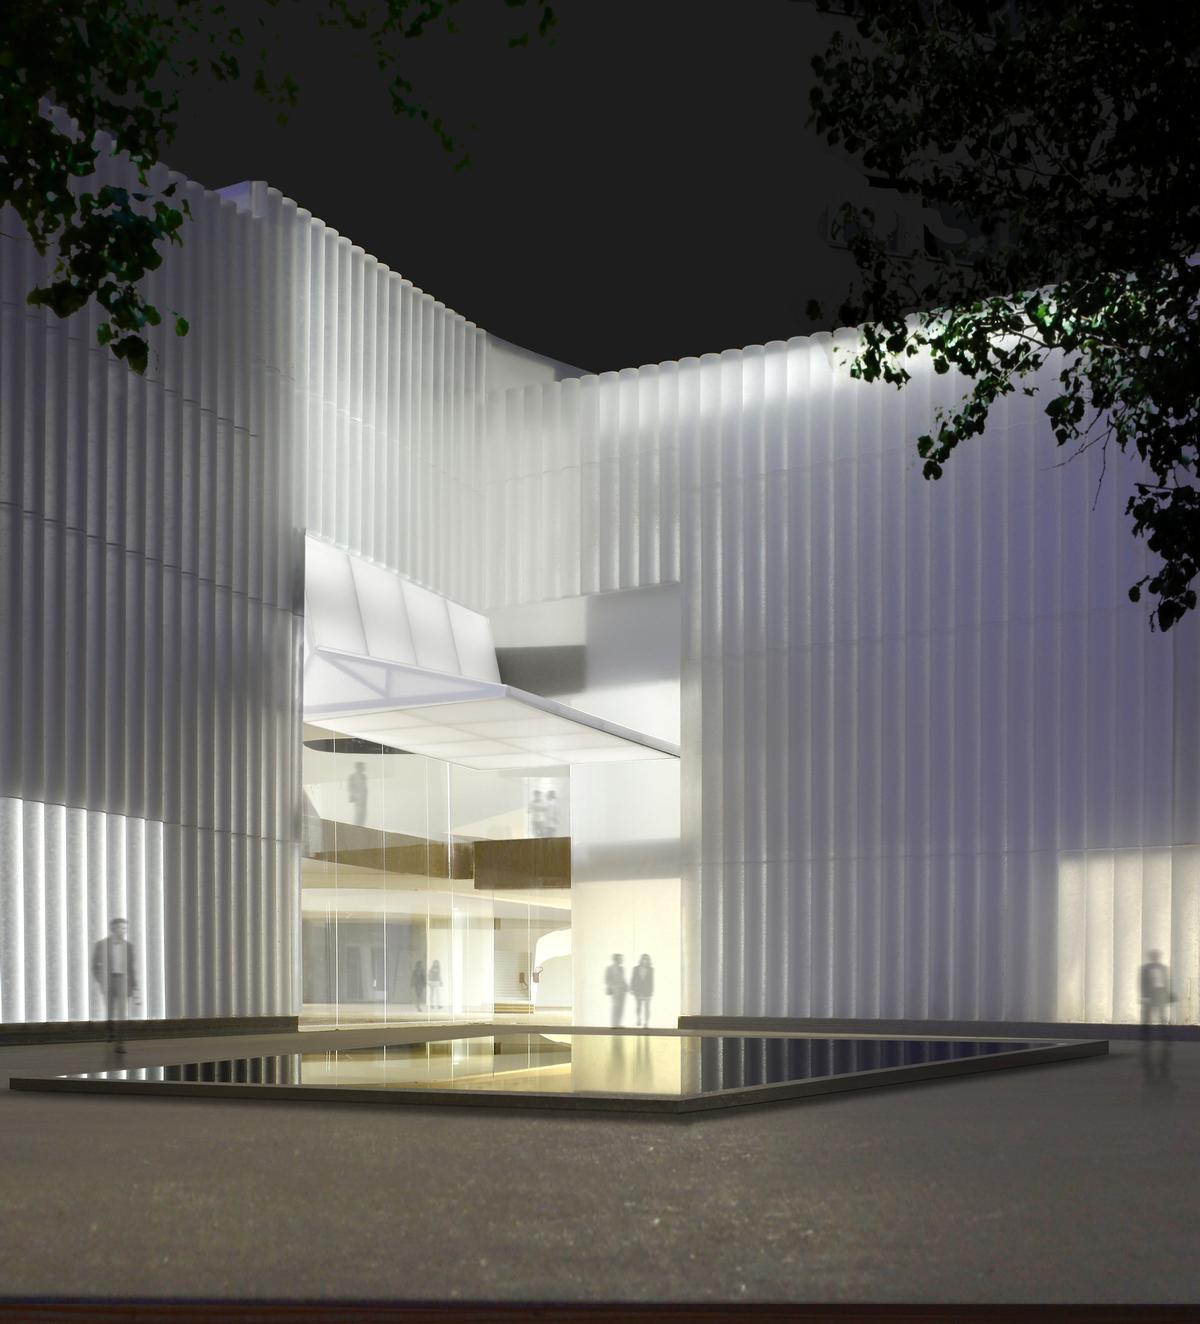 The building will be clad in a translucent-glass exterior, which will glow when lit from within at night / Steven Holl Architects